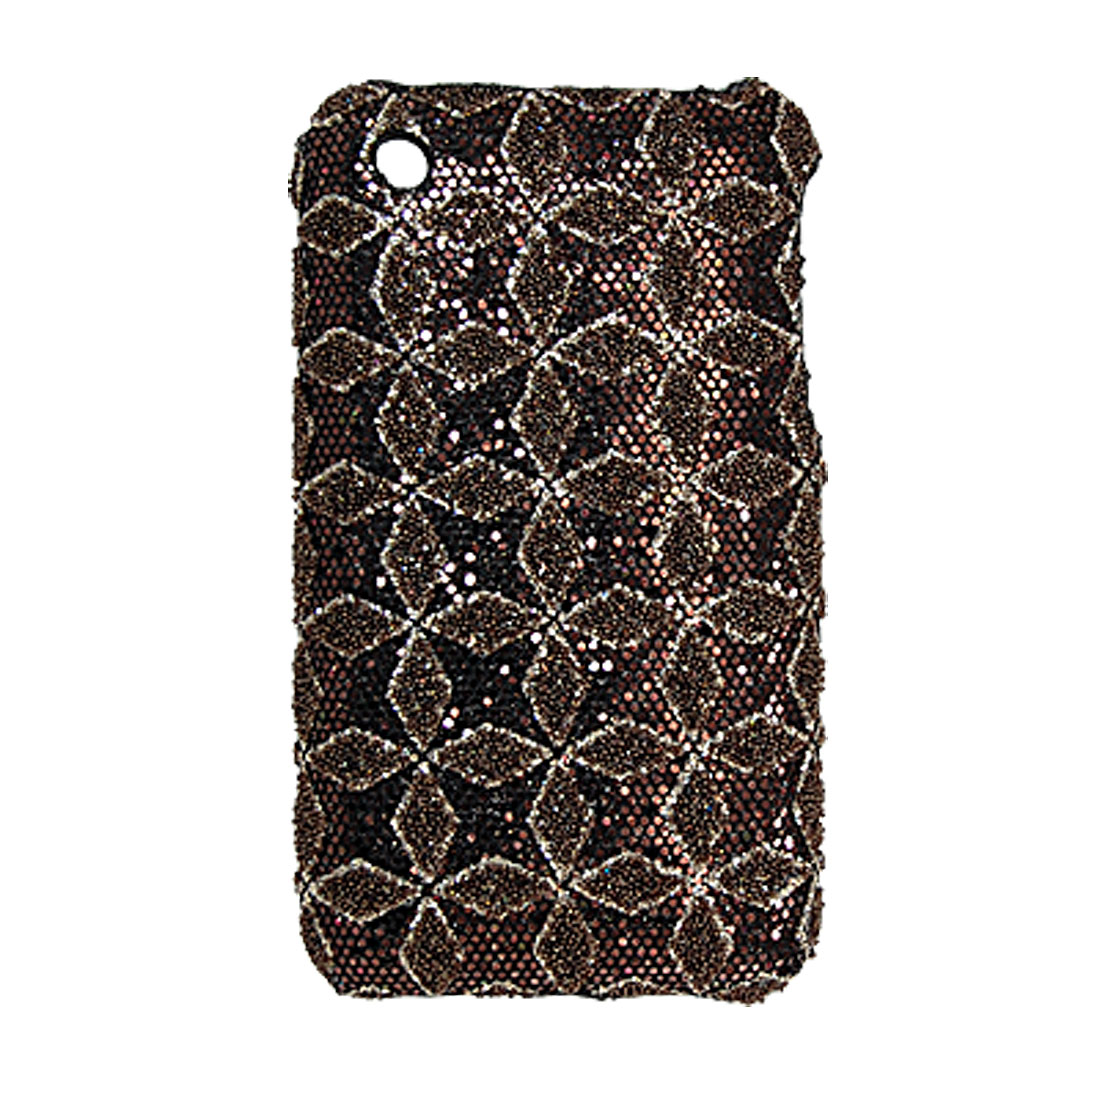 Coffee Glittery Rhombus Nonslip Hard Back Case for iPhone 3G